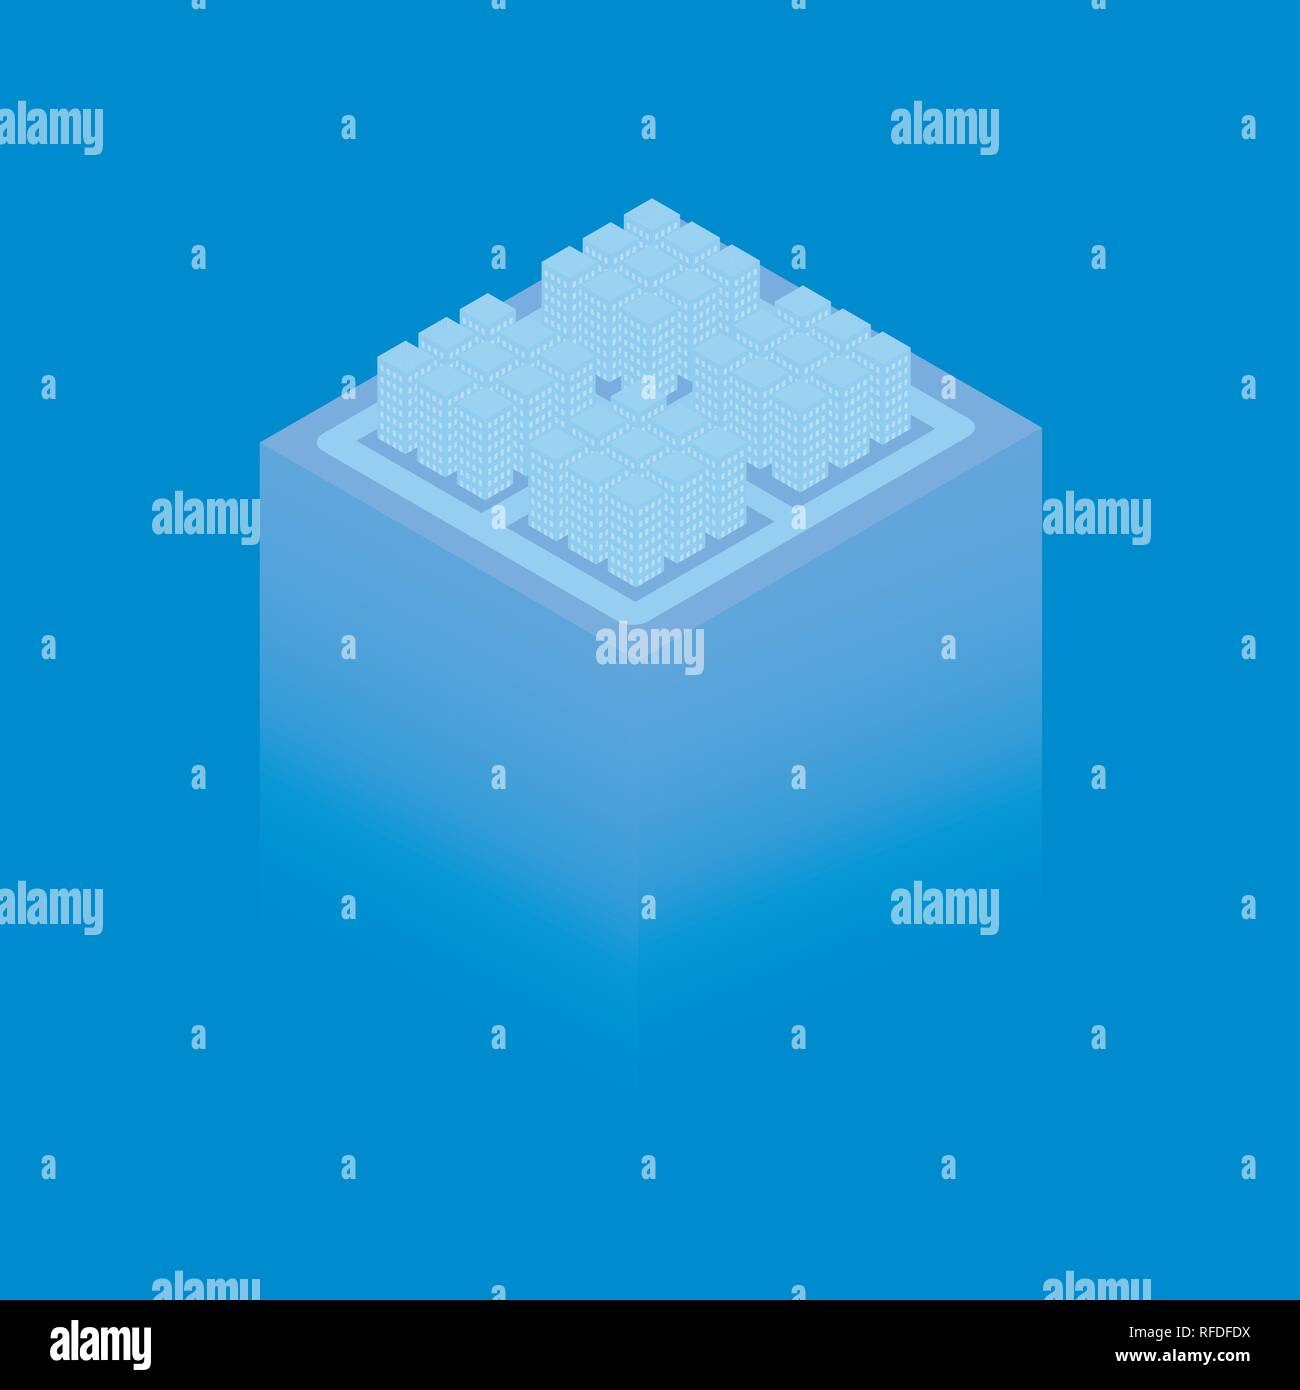 The projection of the neighborhood with multi-storey houses on a blue background. Vector illustration. Stock Vector